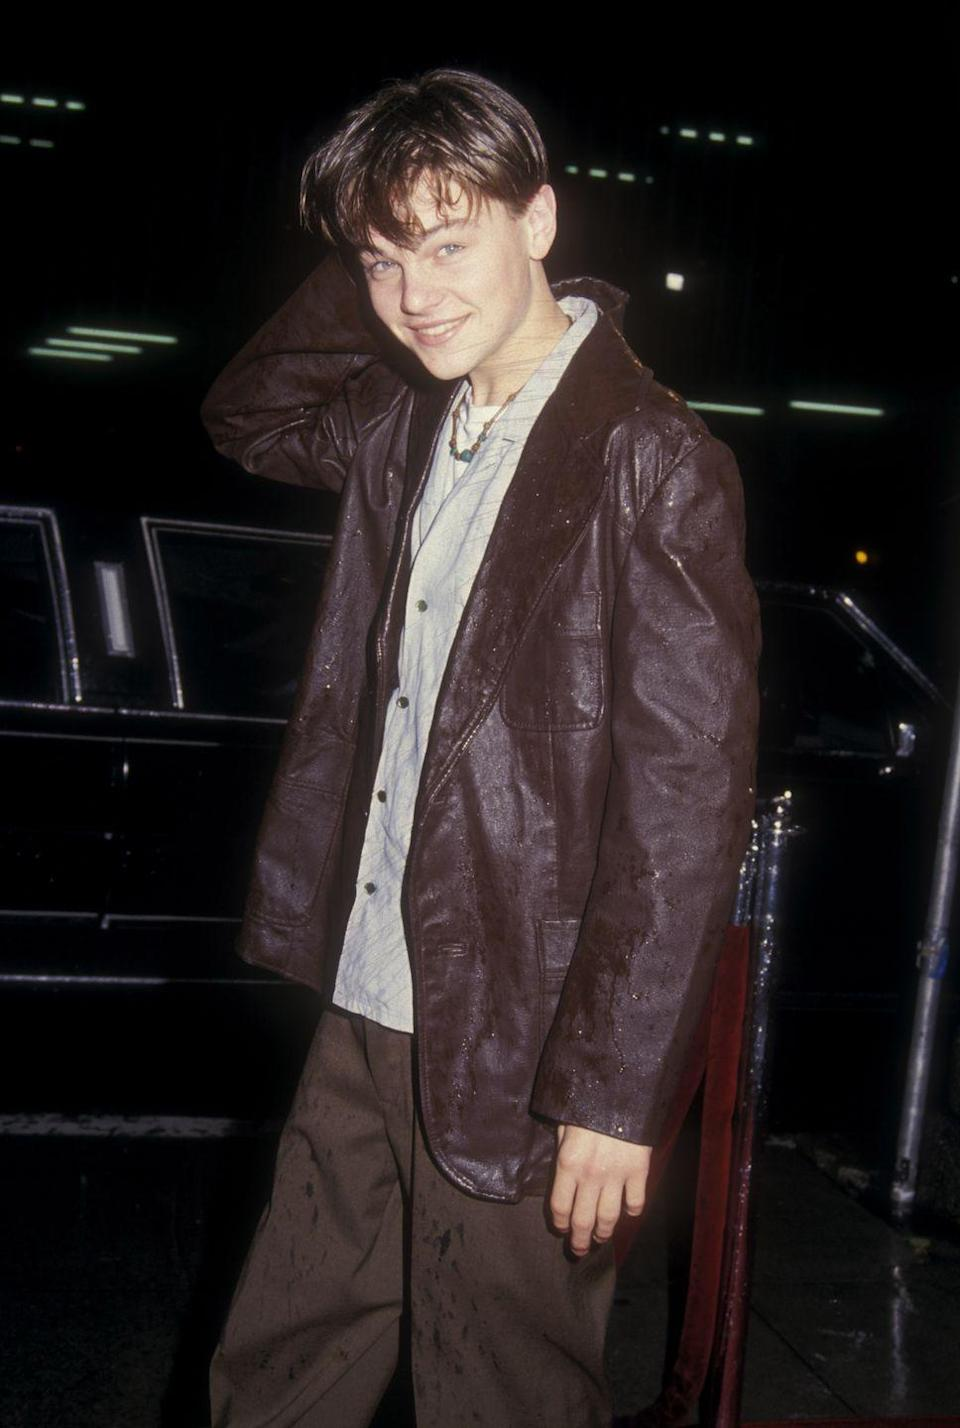 <p>If you were attracted to men and had a pulse in the '90s, there was little to no chance that you weren't into Leo, who starred in both <em>Titanic</em> and <em>Romeo + Juliet</em>. With that angelic face, none of us ever had a chance.</p>